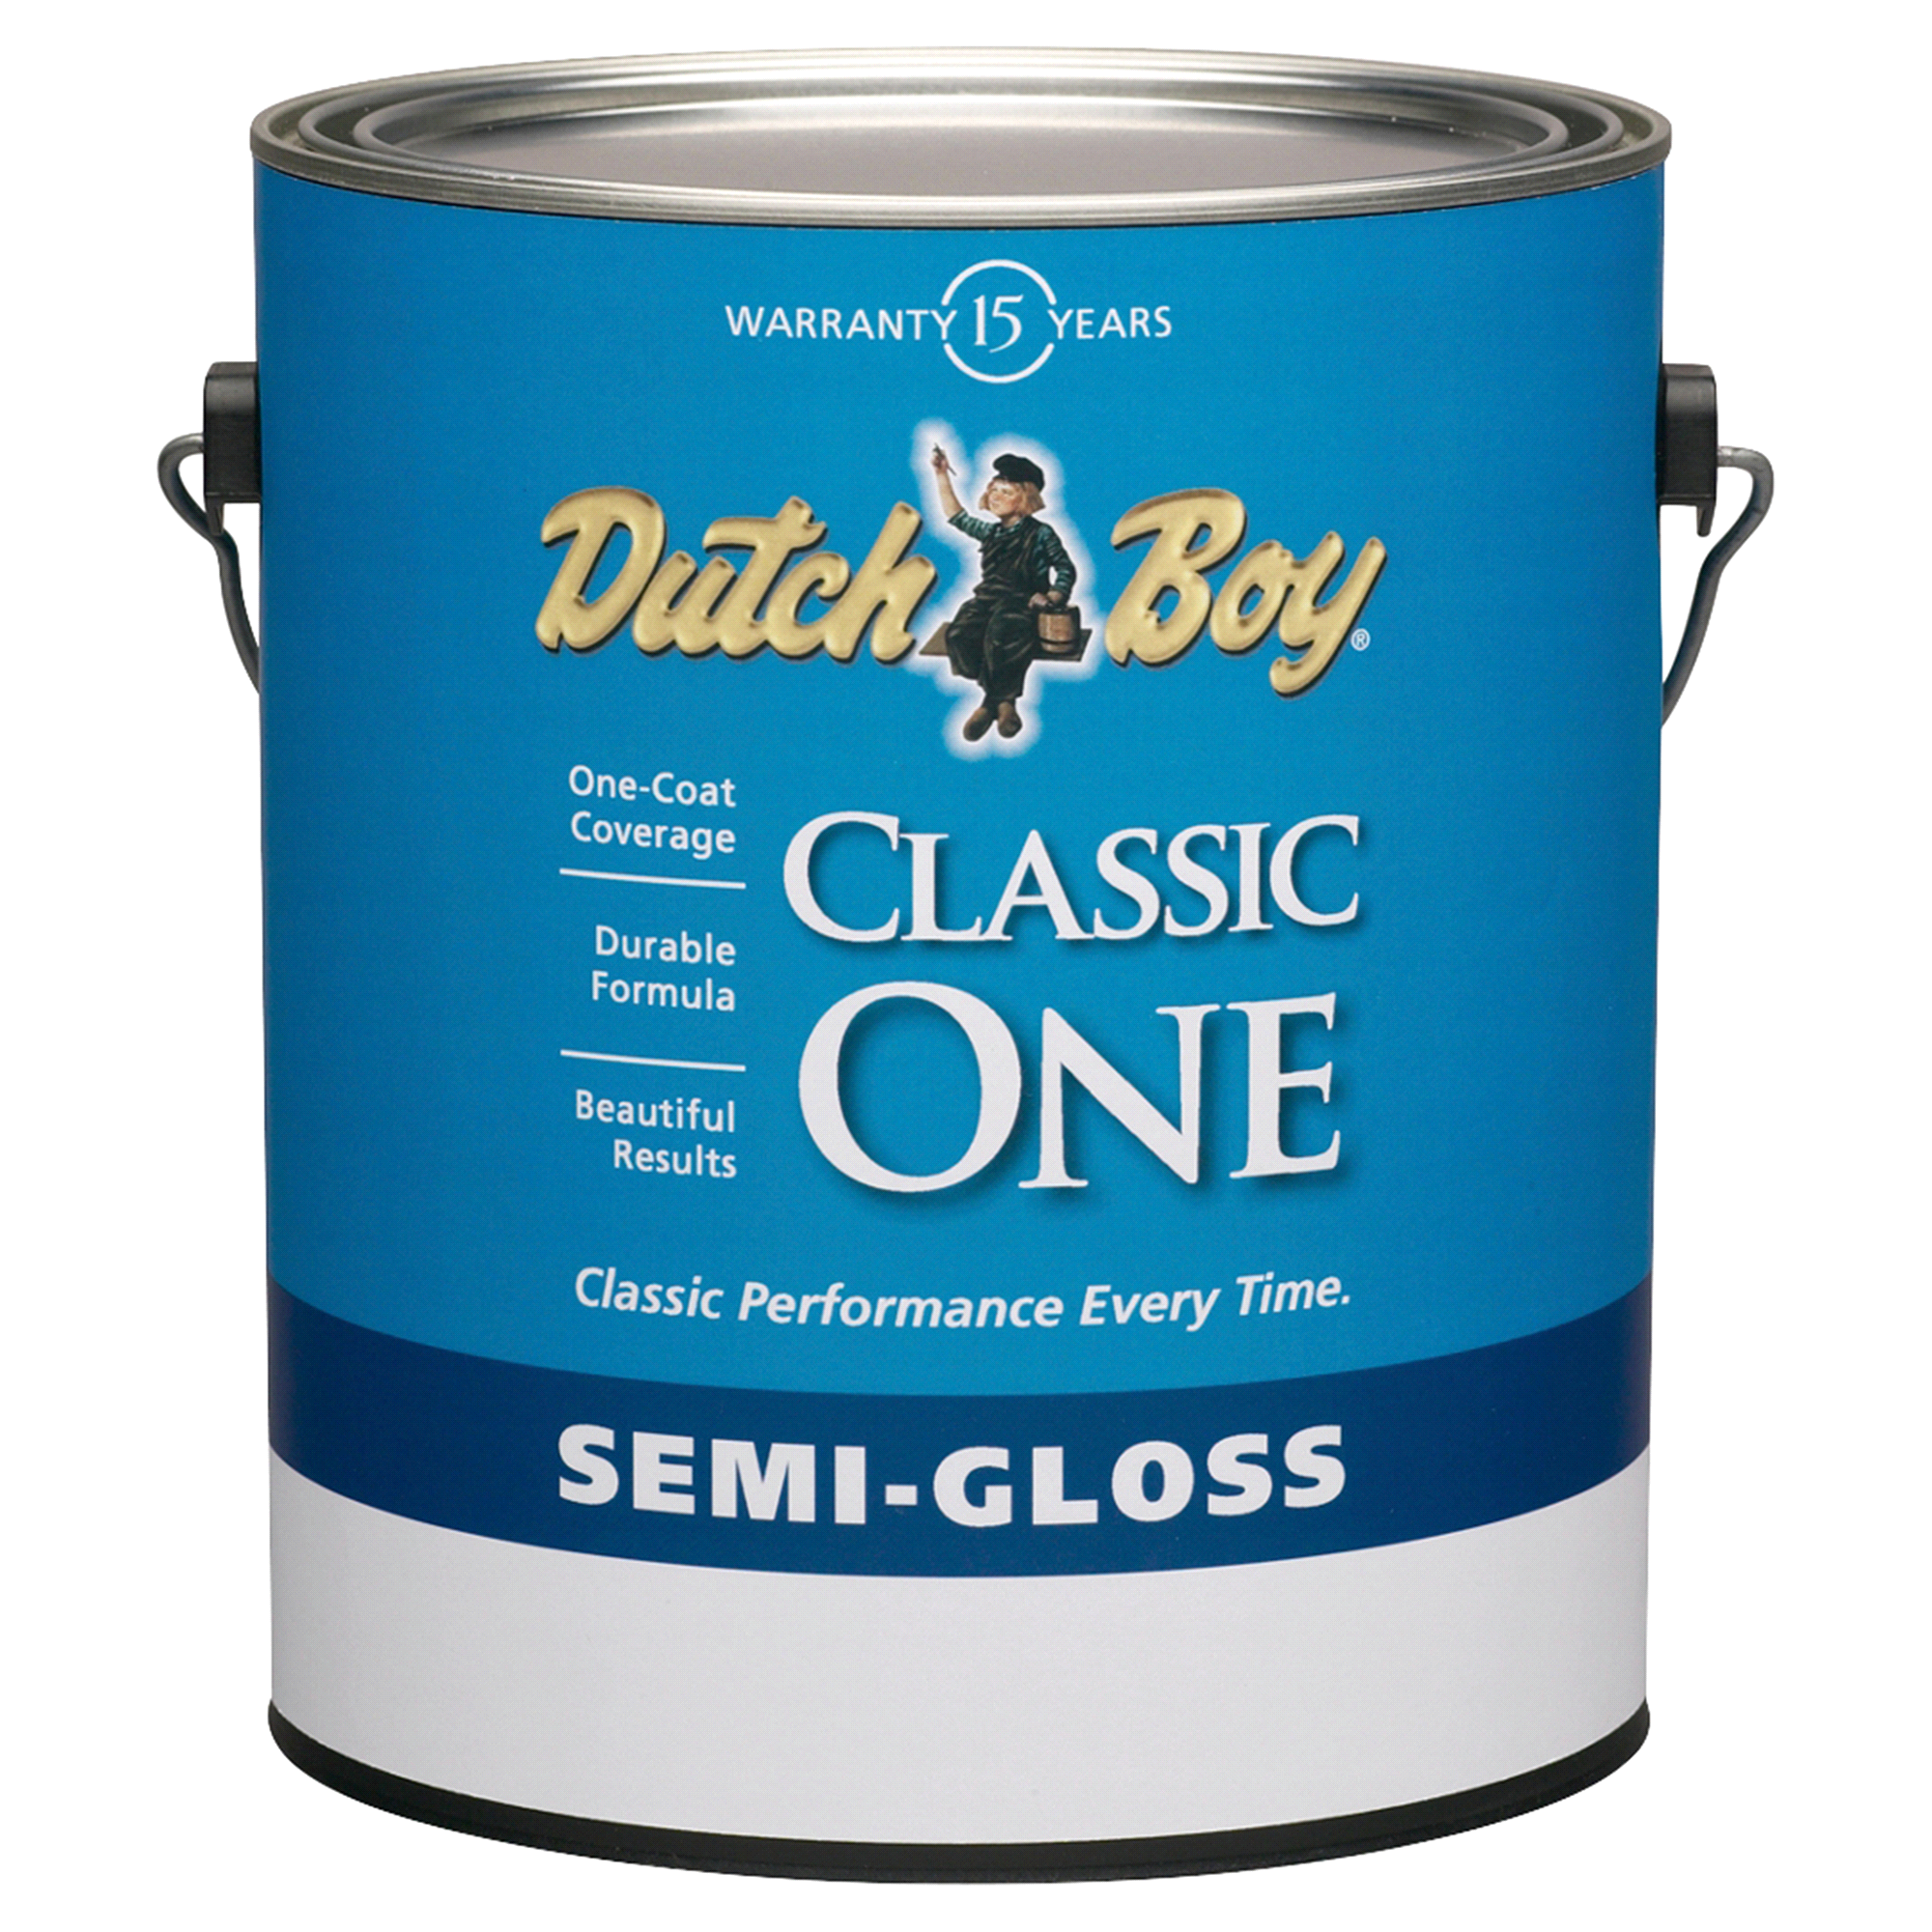 Dutch Boy Classic One Semi-Gloss Gallon White | Meijer.com